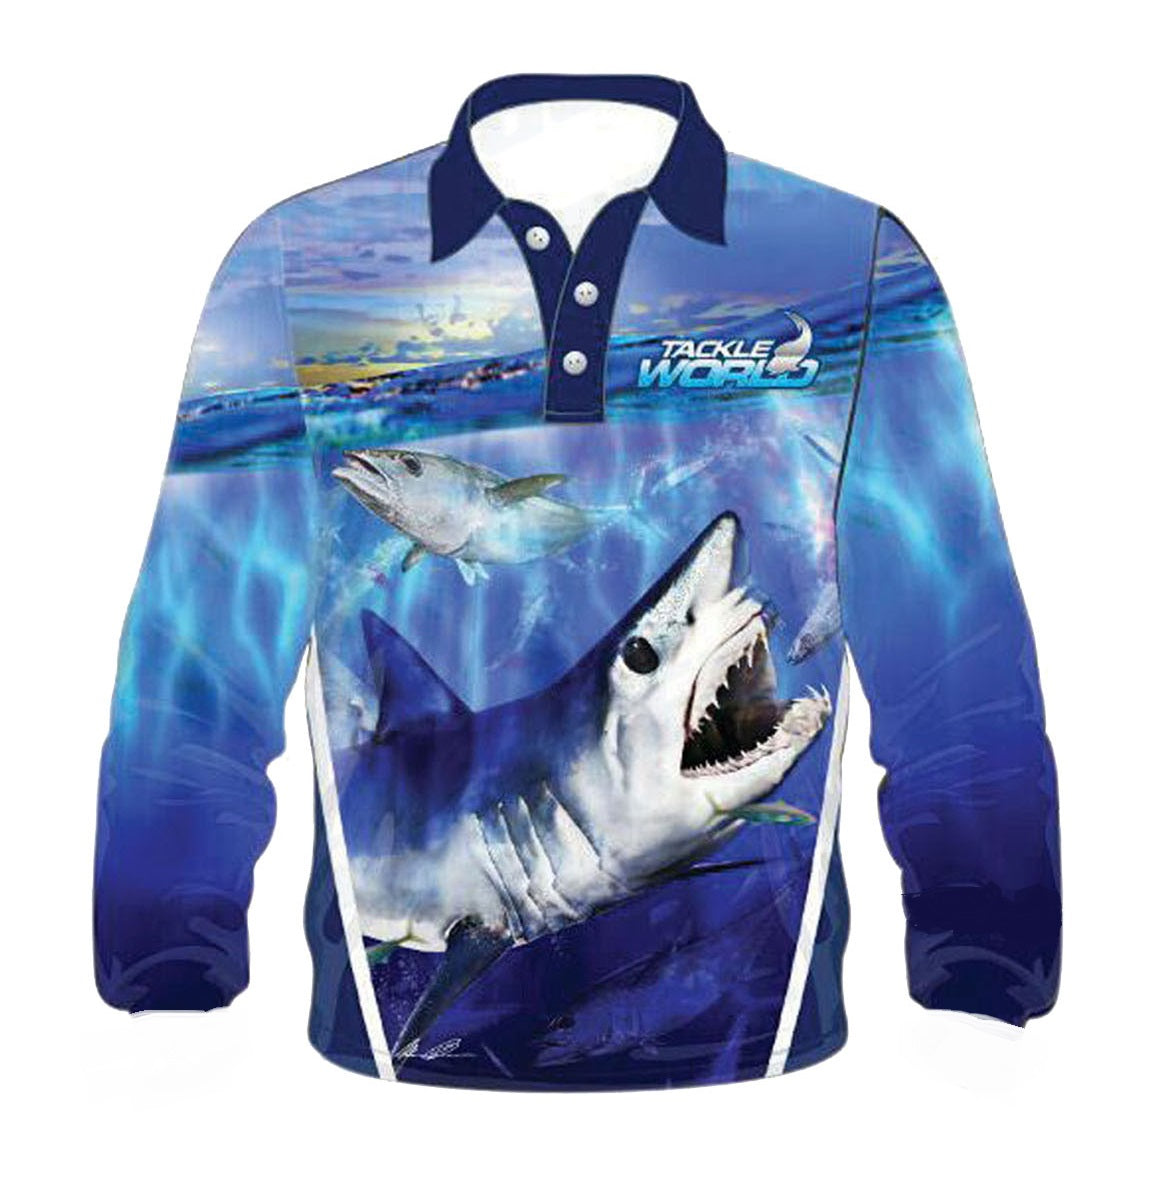 Tackle World Mako Shark Kids Long Sleeve Fishing Shirt